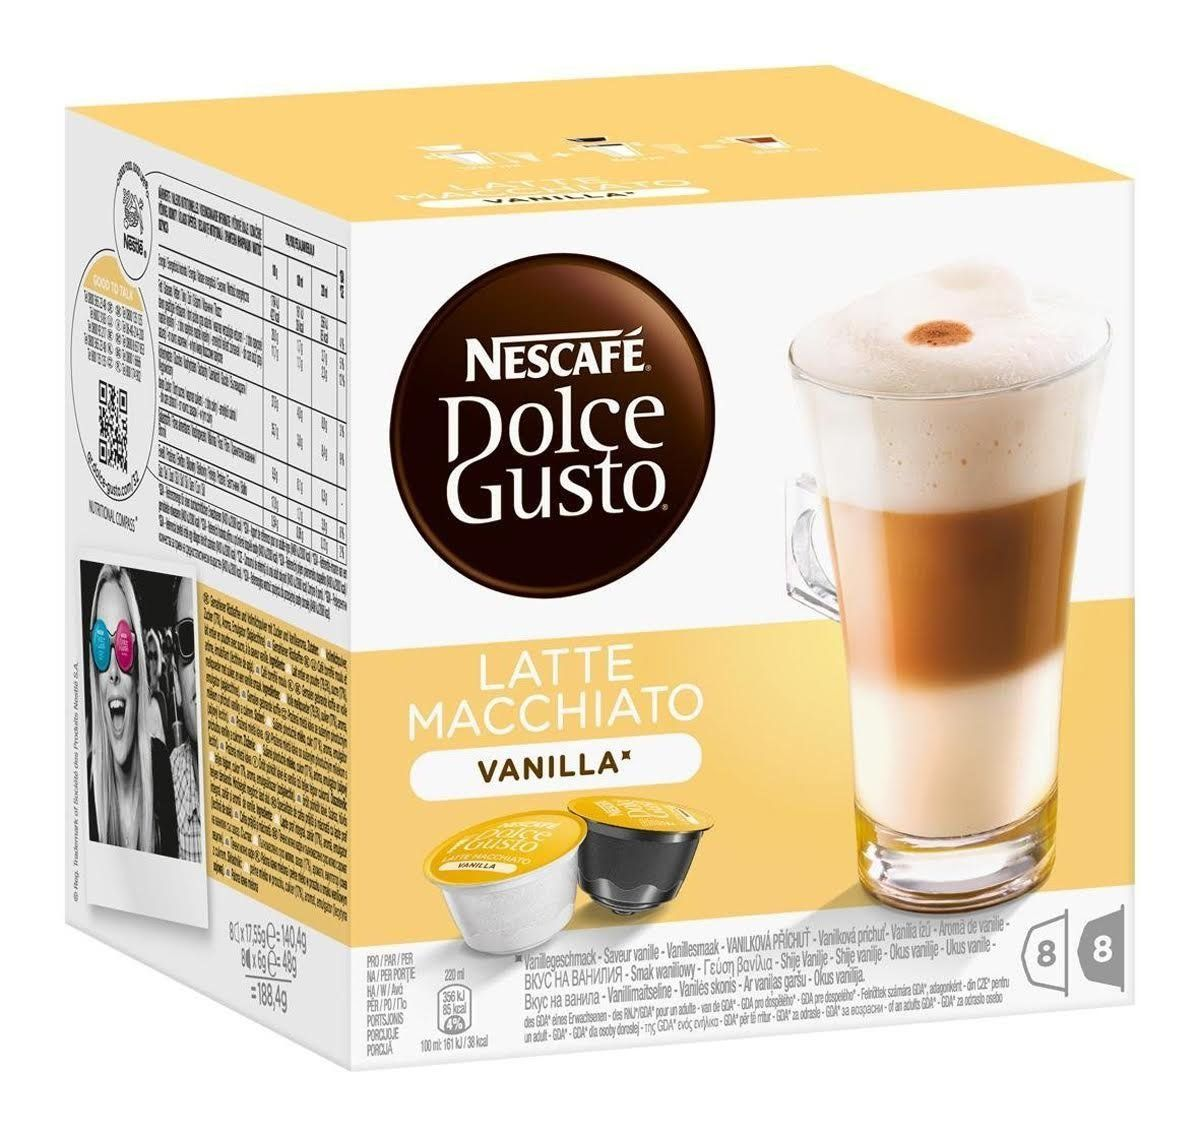 Nescafe Dolce Gusto for Nescafe Dolce Gusto Brewers